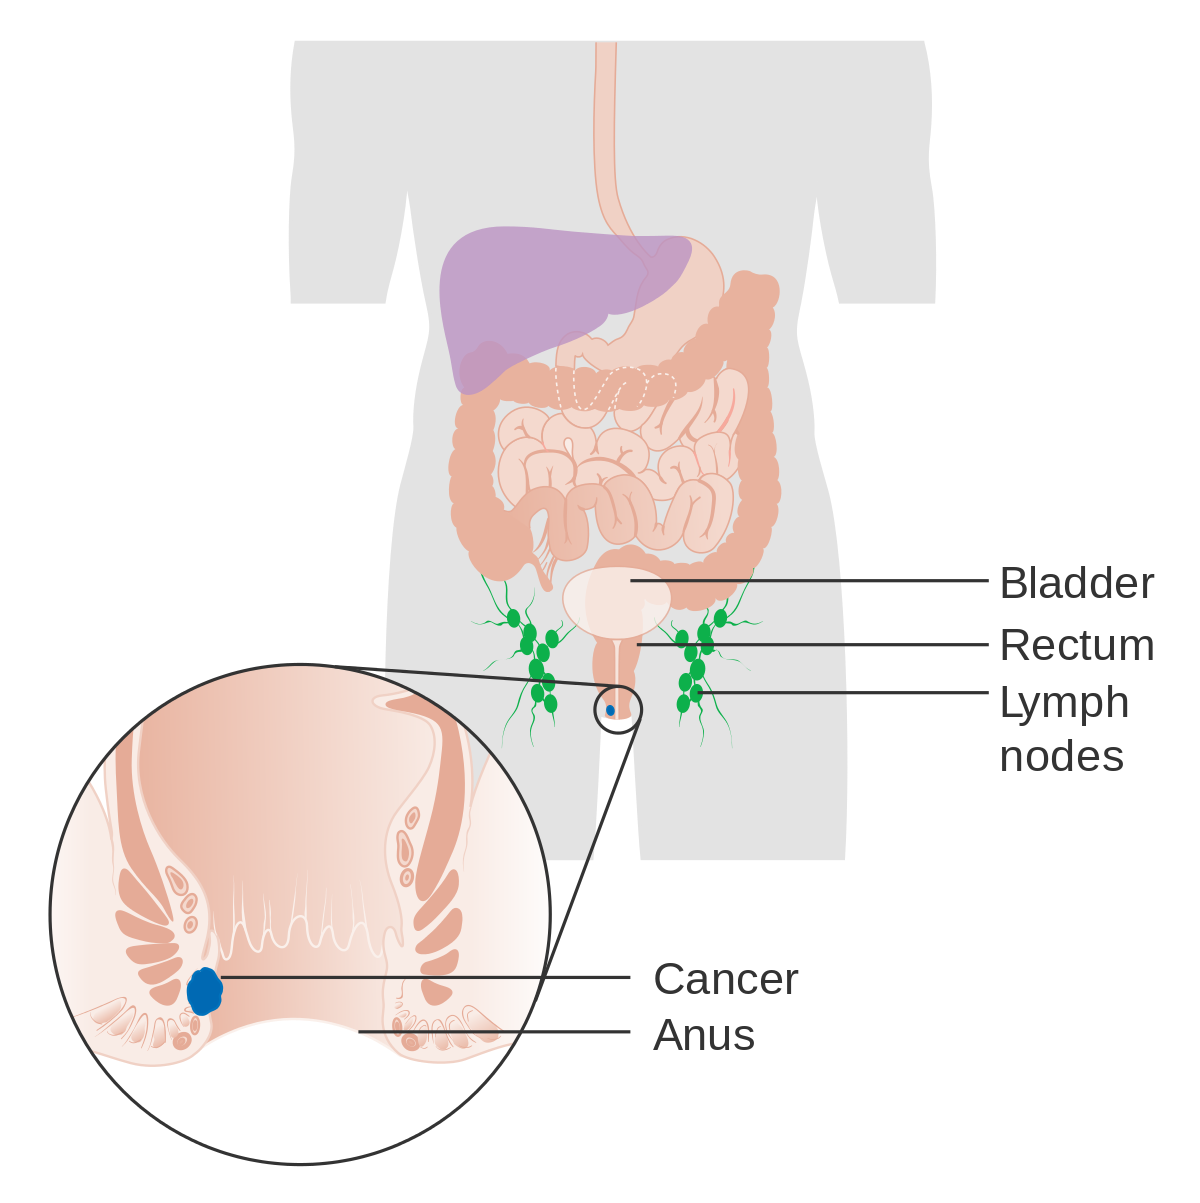 cancer vindecat prin imunoterapie what causes papillomas in breast ducts